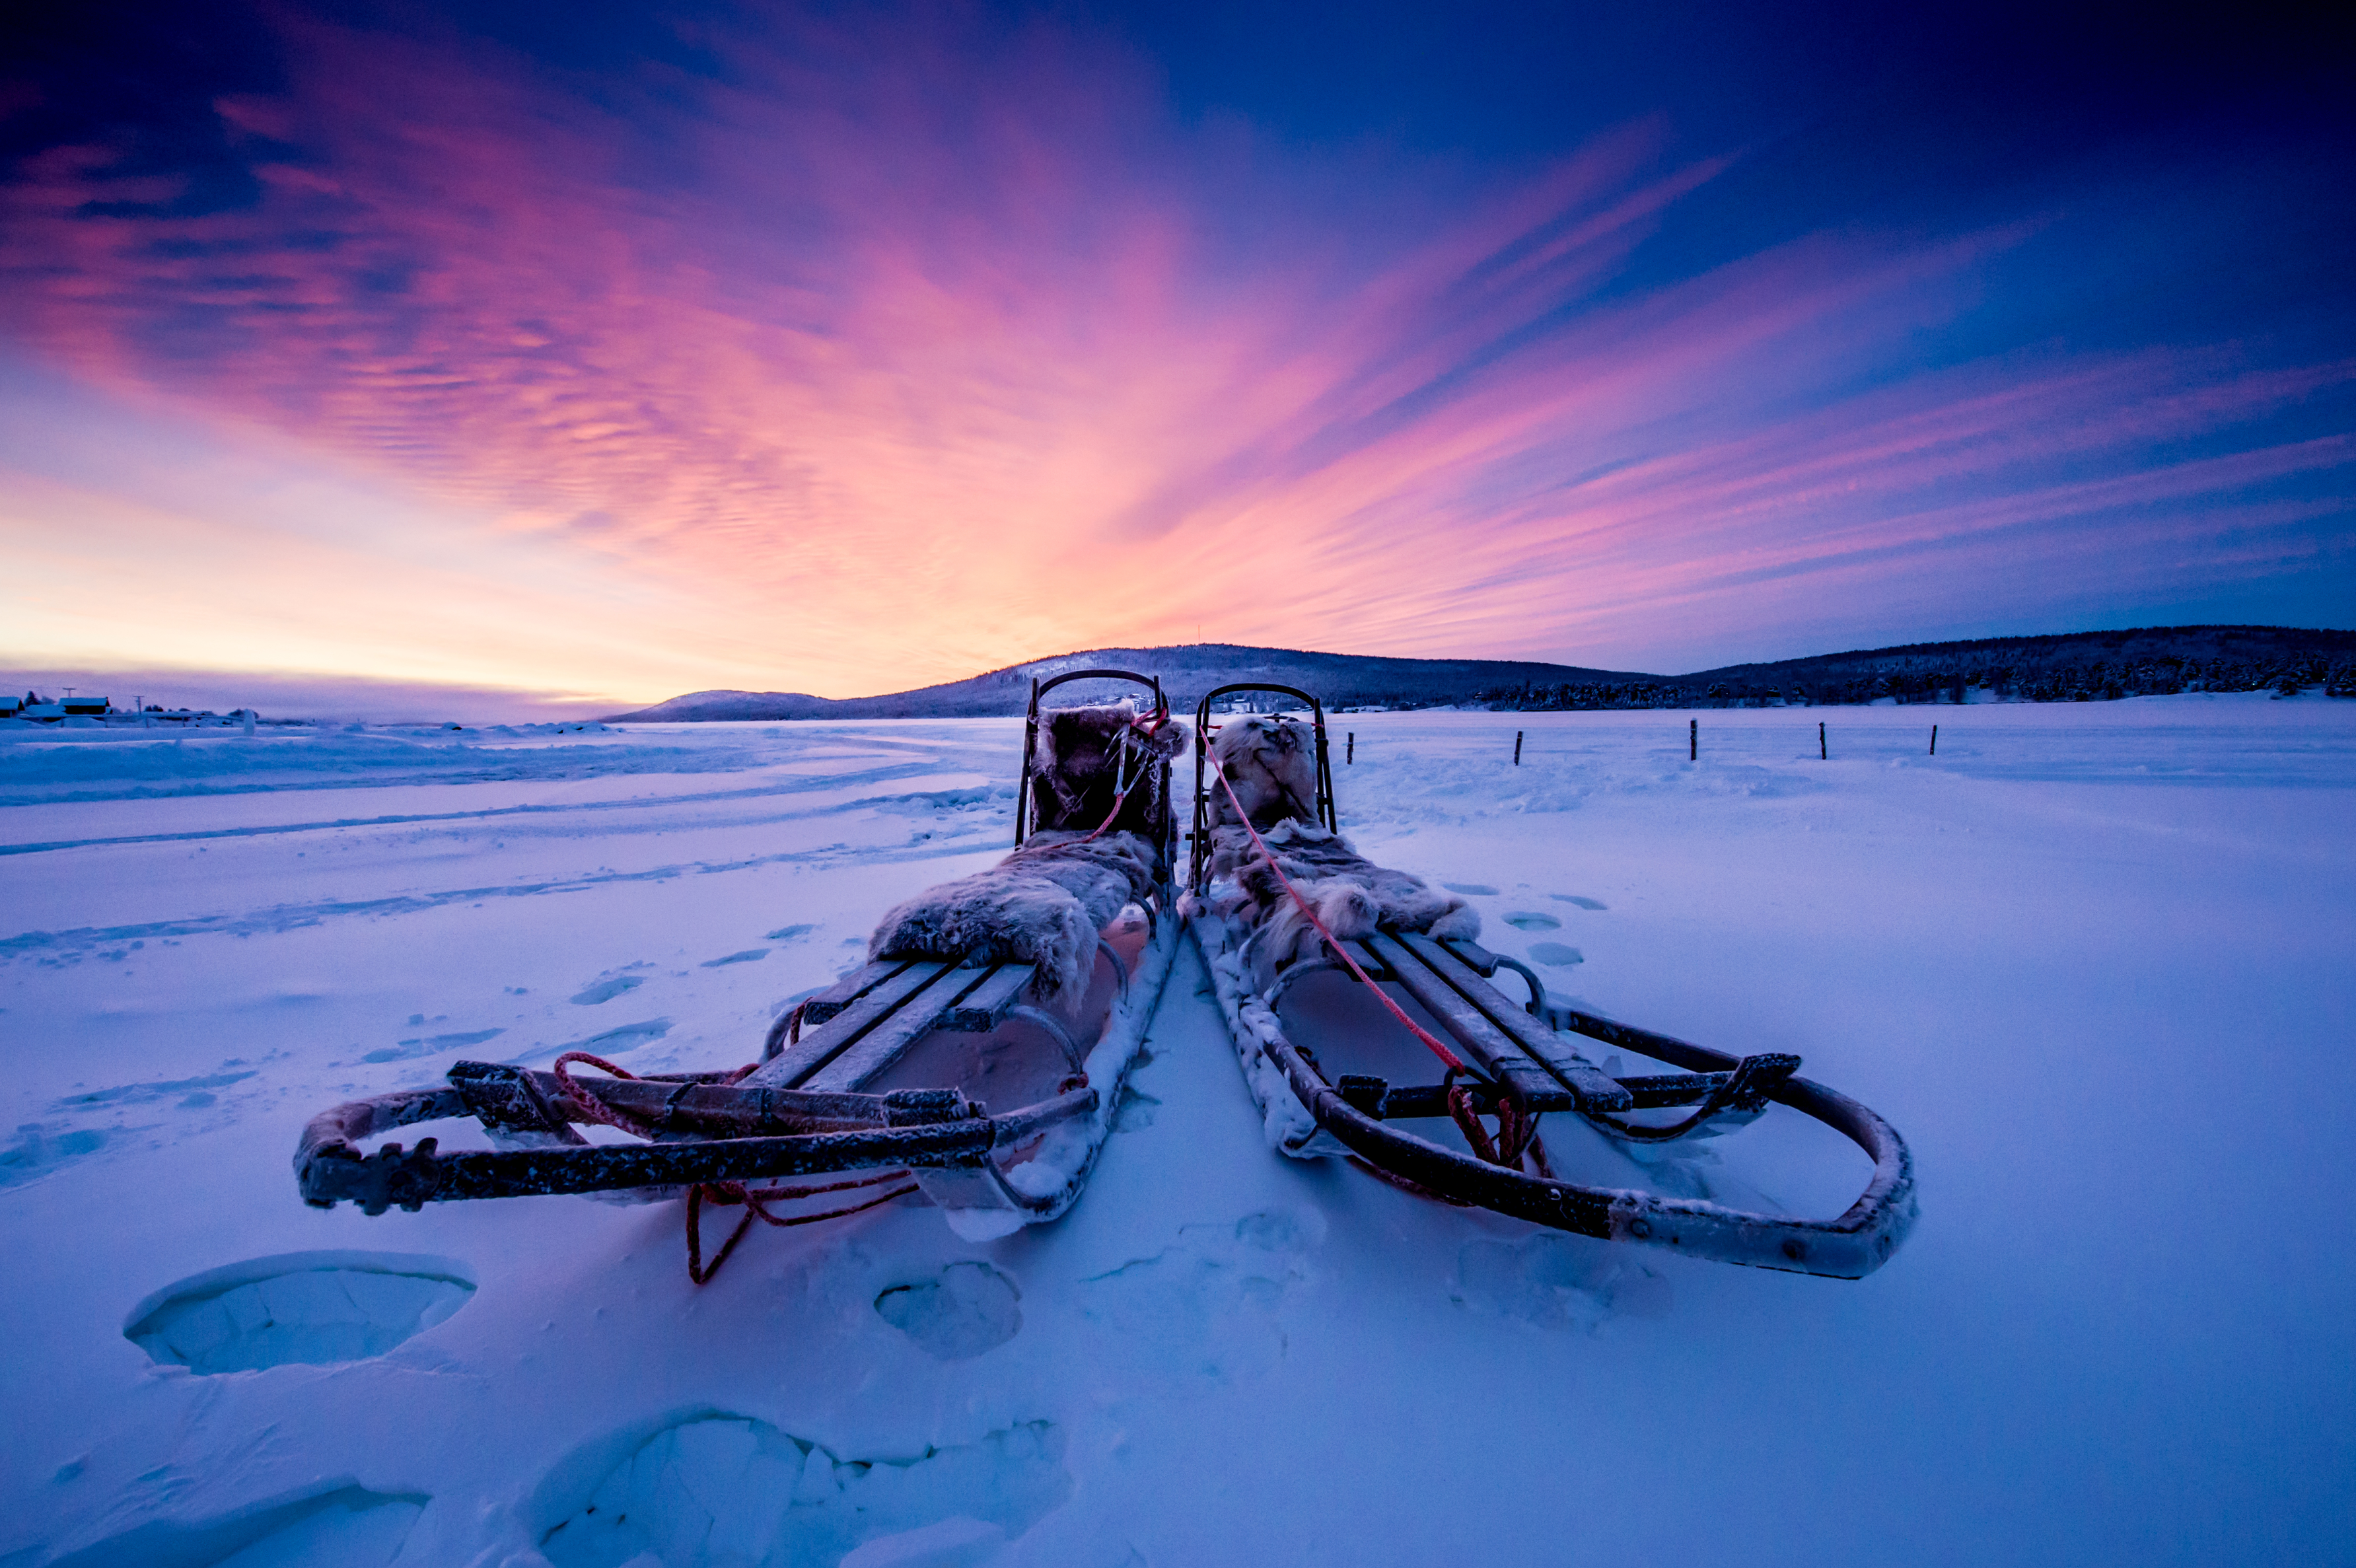 snow, dog-sledding, icehotel, snow, sweden, concept hotel, coco travel